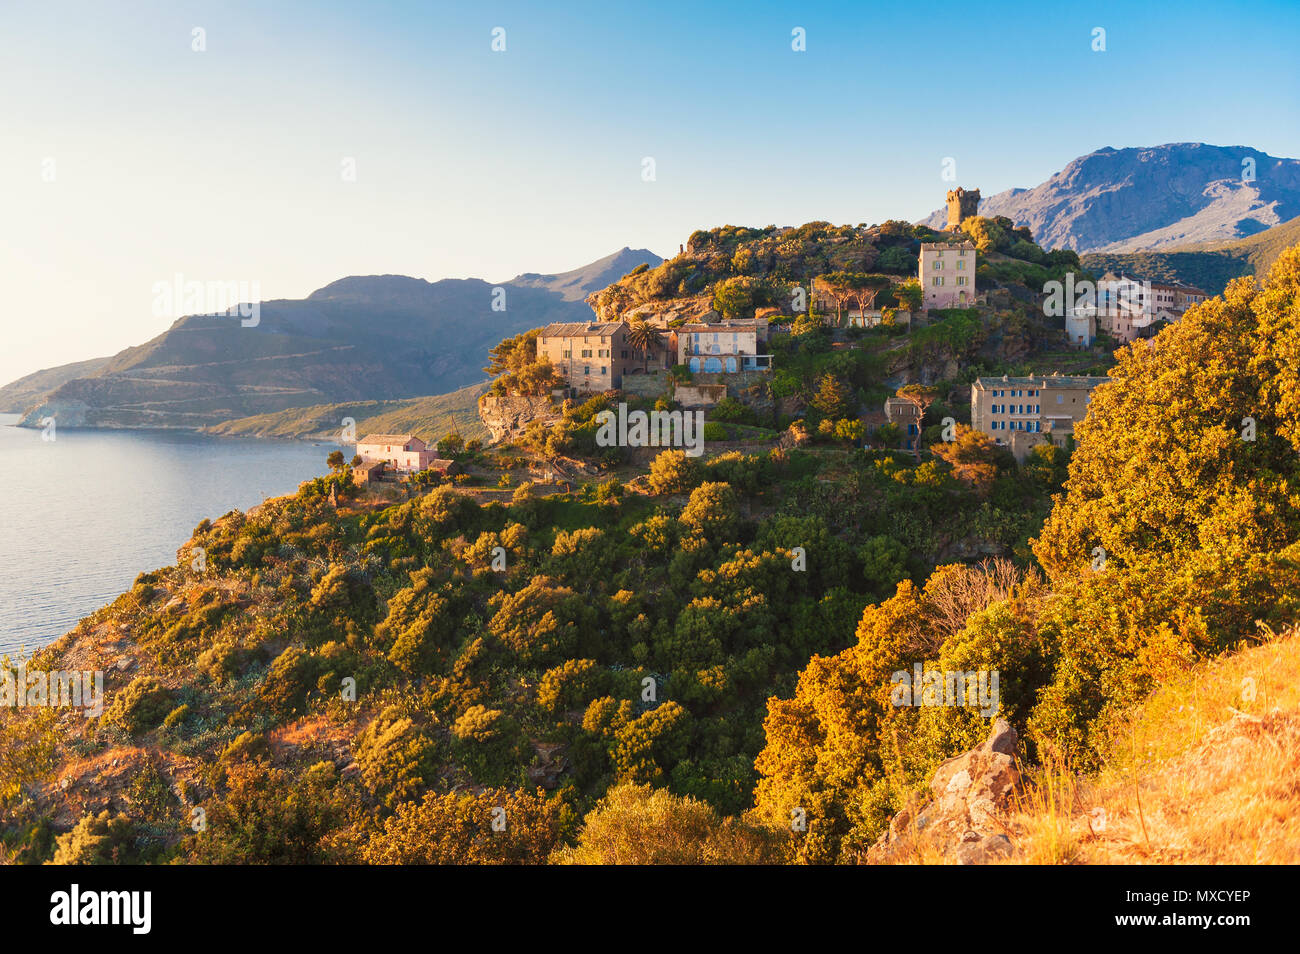 Village of Nonza, Corsica, France at sunset - Stock Image